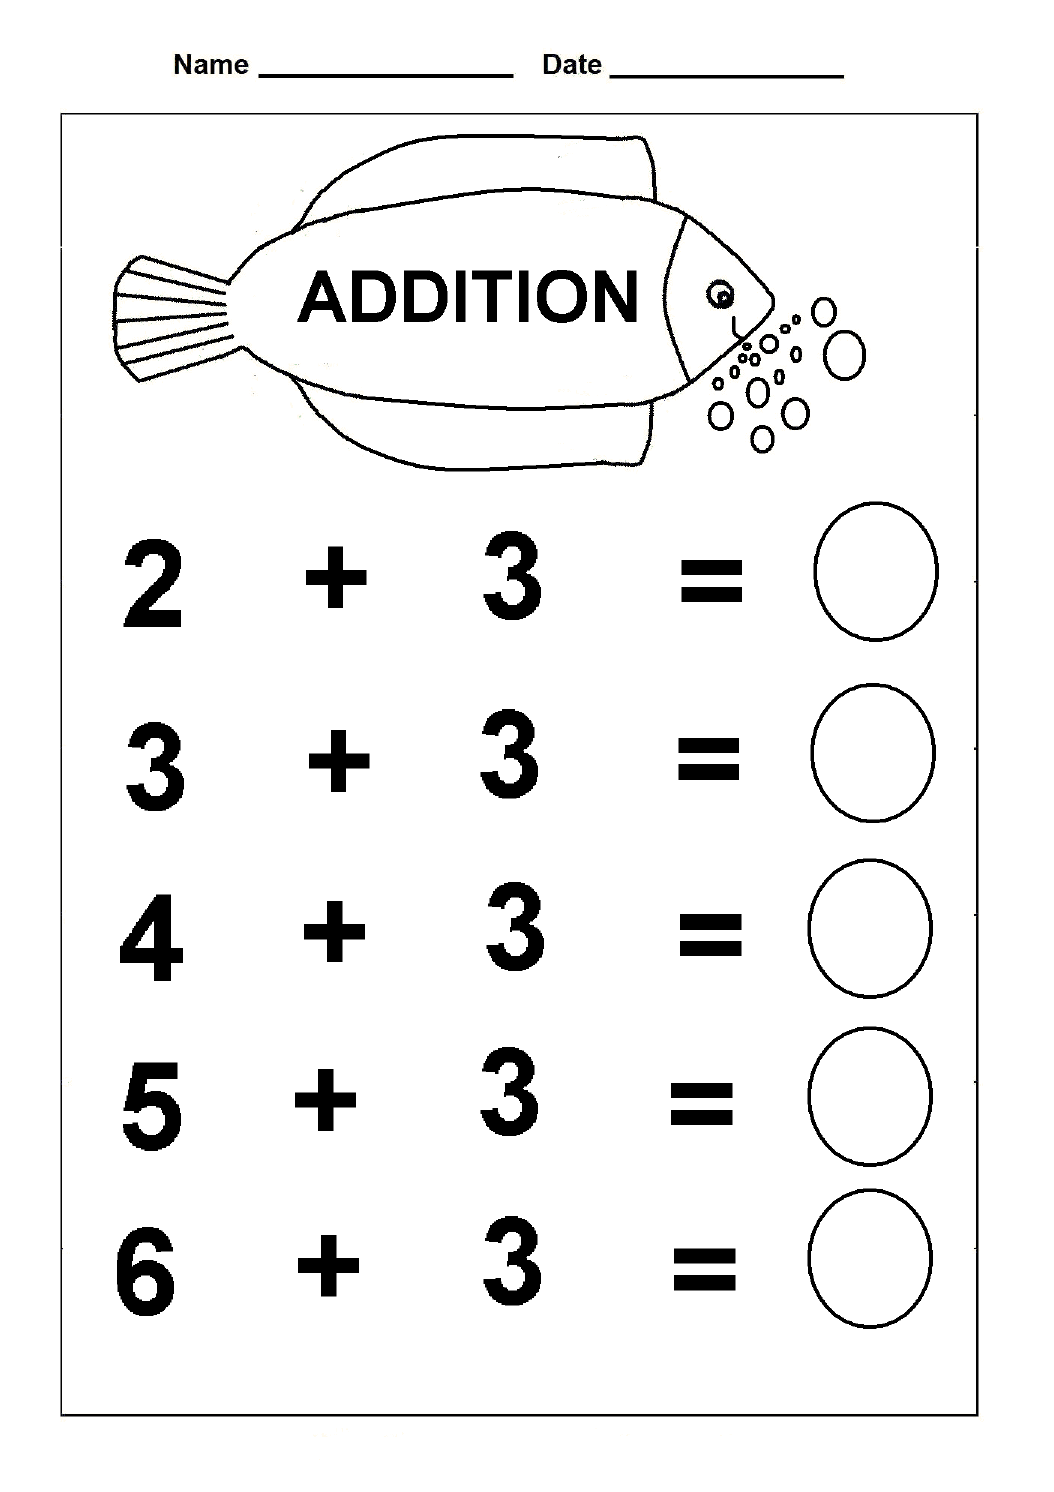 Facing Math Worksheet Easy